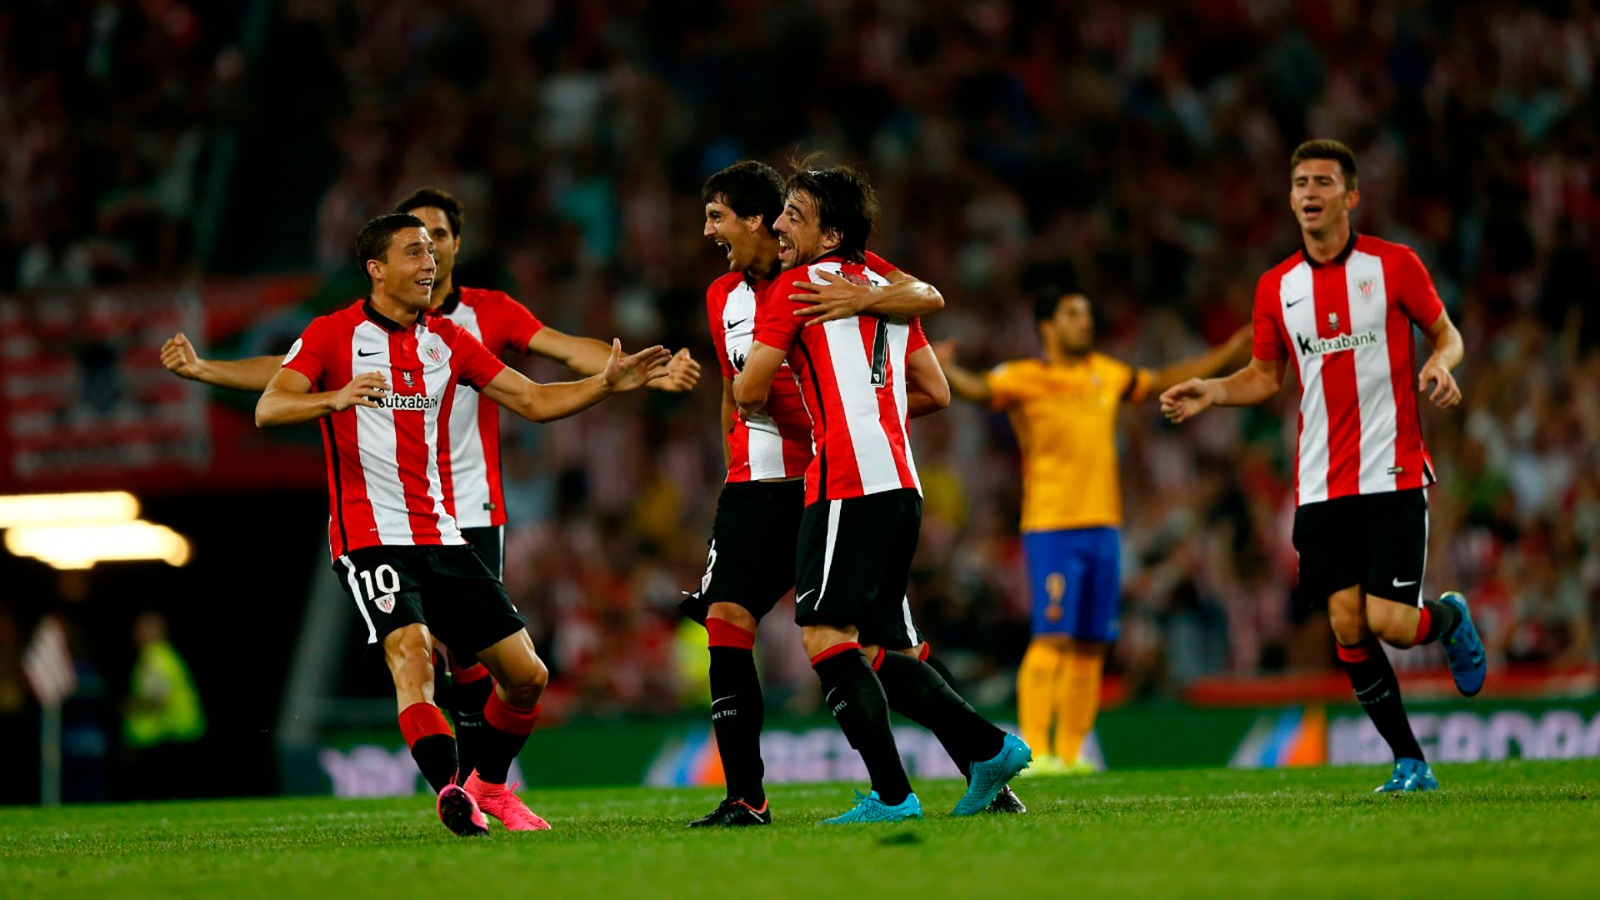 Videoteca: Supercopa 15/16 (ida) I Athletic Club 4 – FC Barcelona 0